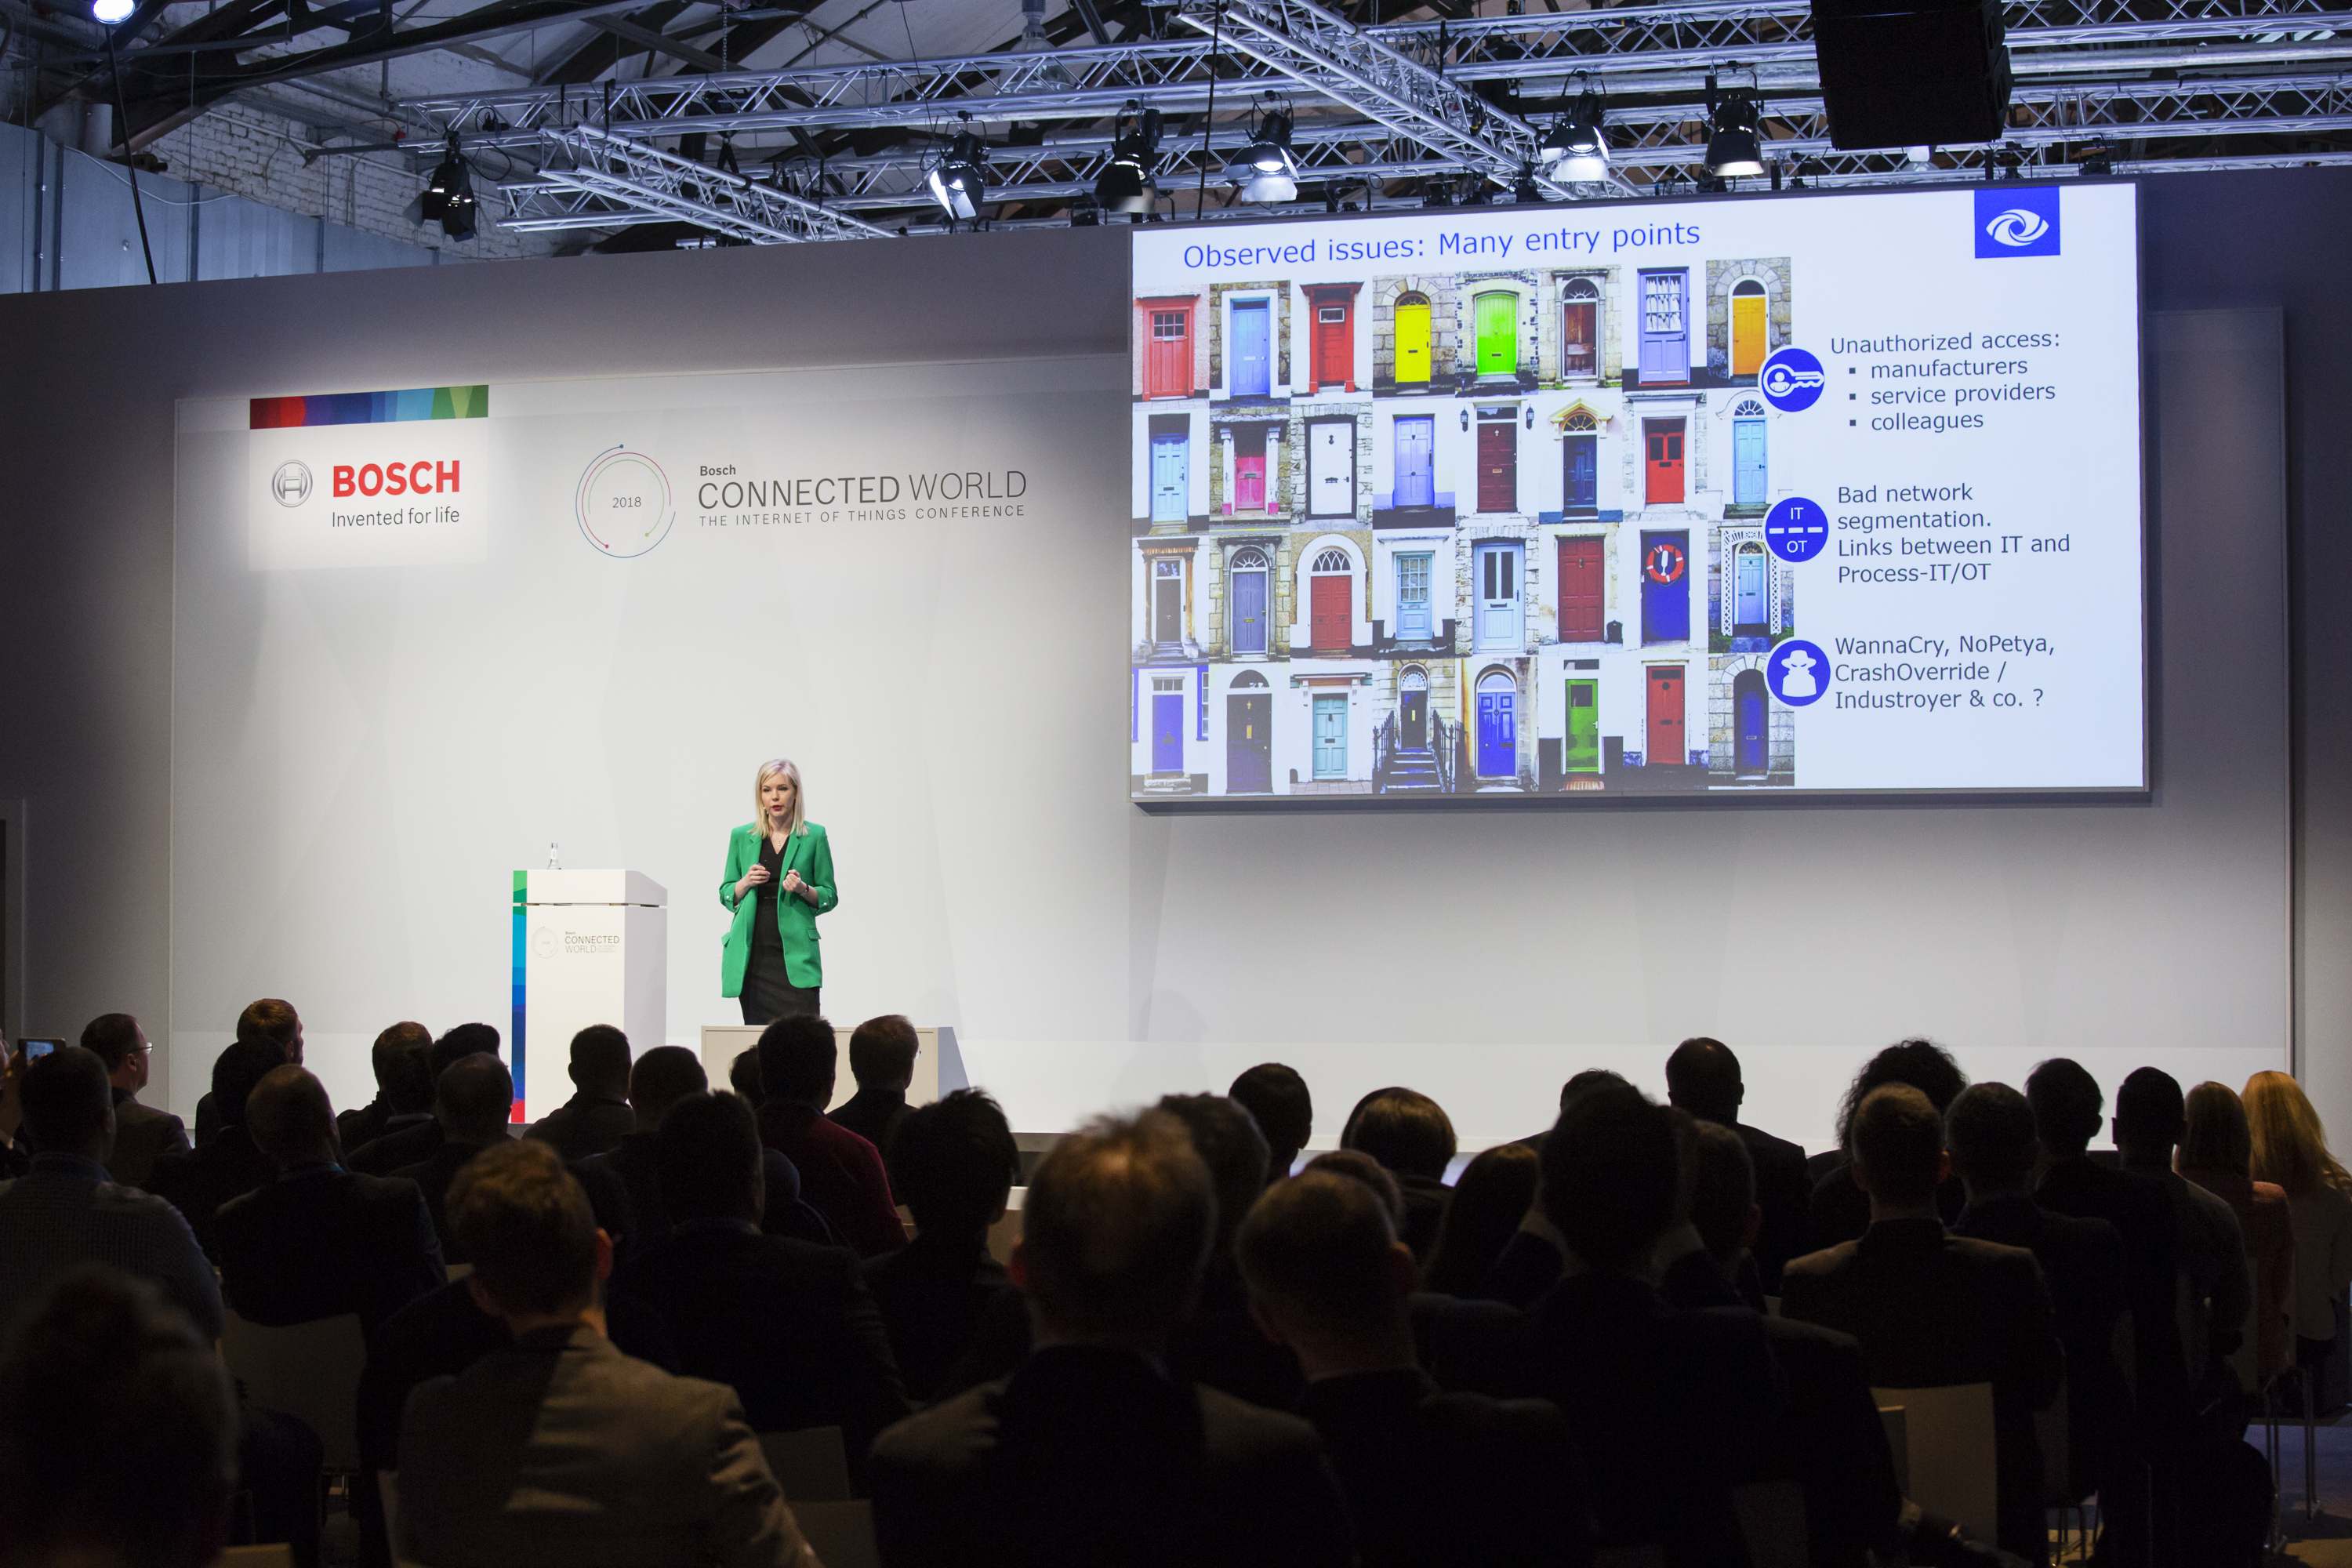 Christina Hoefer from SecurityMatters speaking about cyber resilience in industrial networks at the Bosch ConnectedWorld 2018